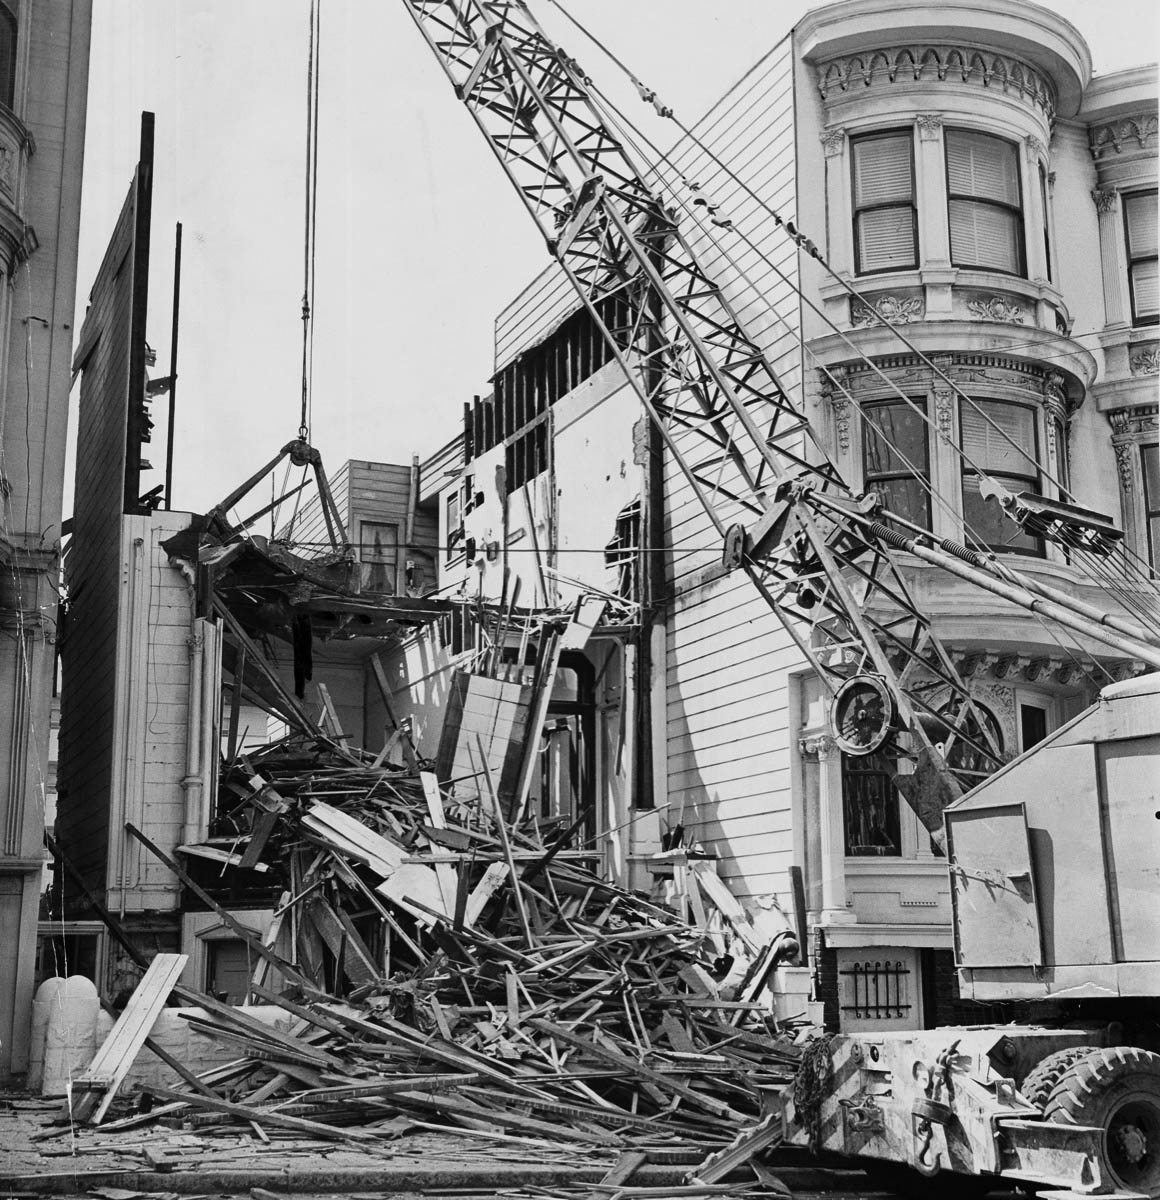 house-demolition.jpg